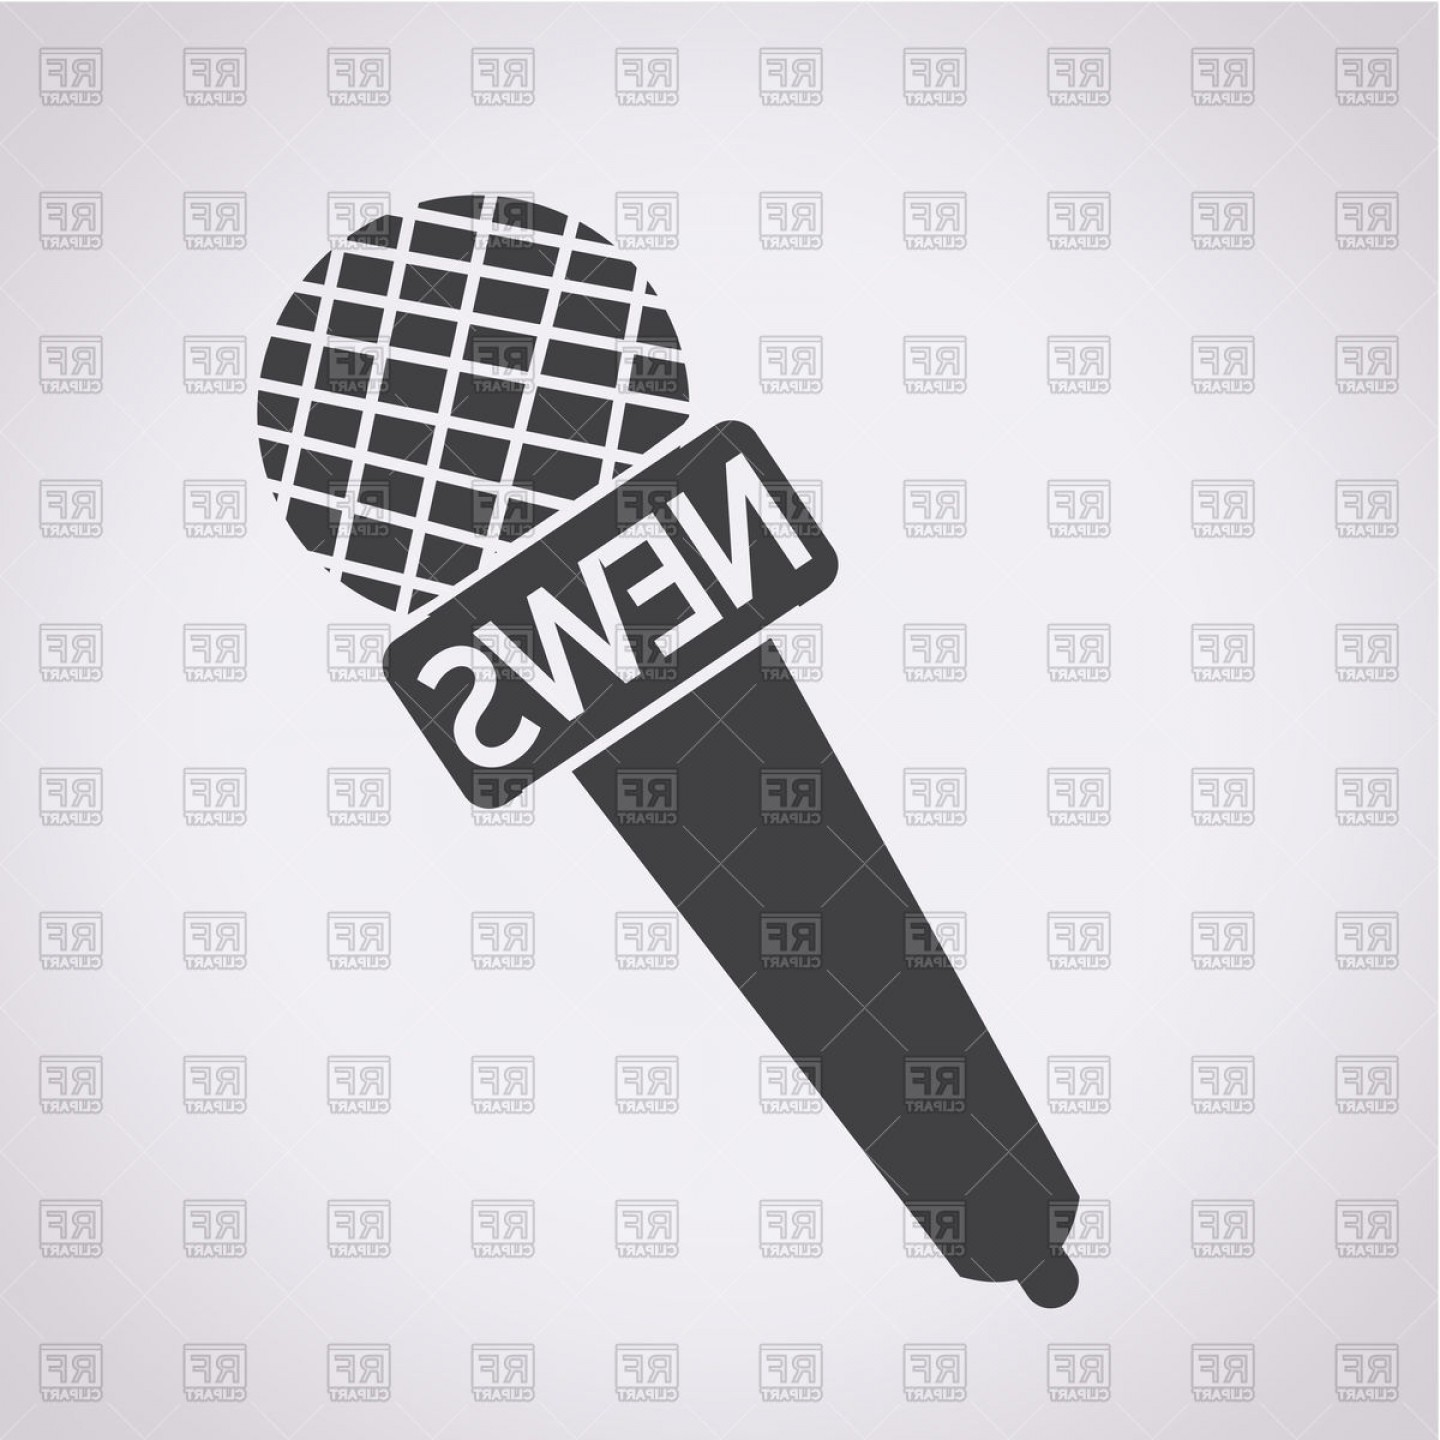 News Microphone Icon Vector: News Microphone Icon Vector Clipart